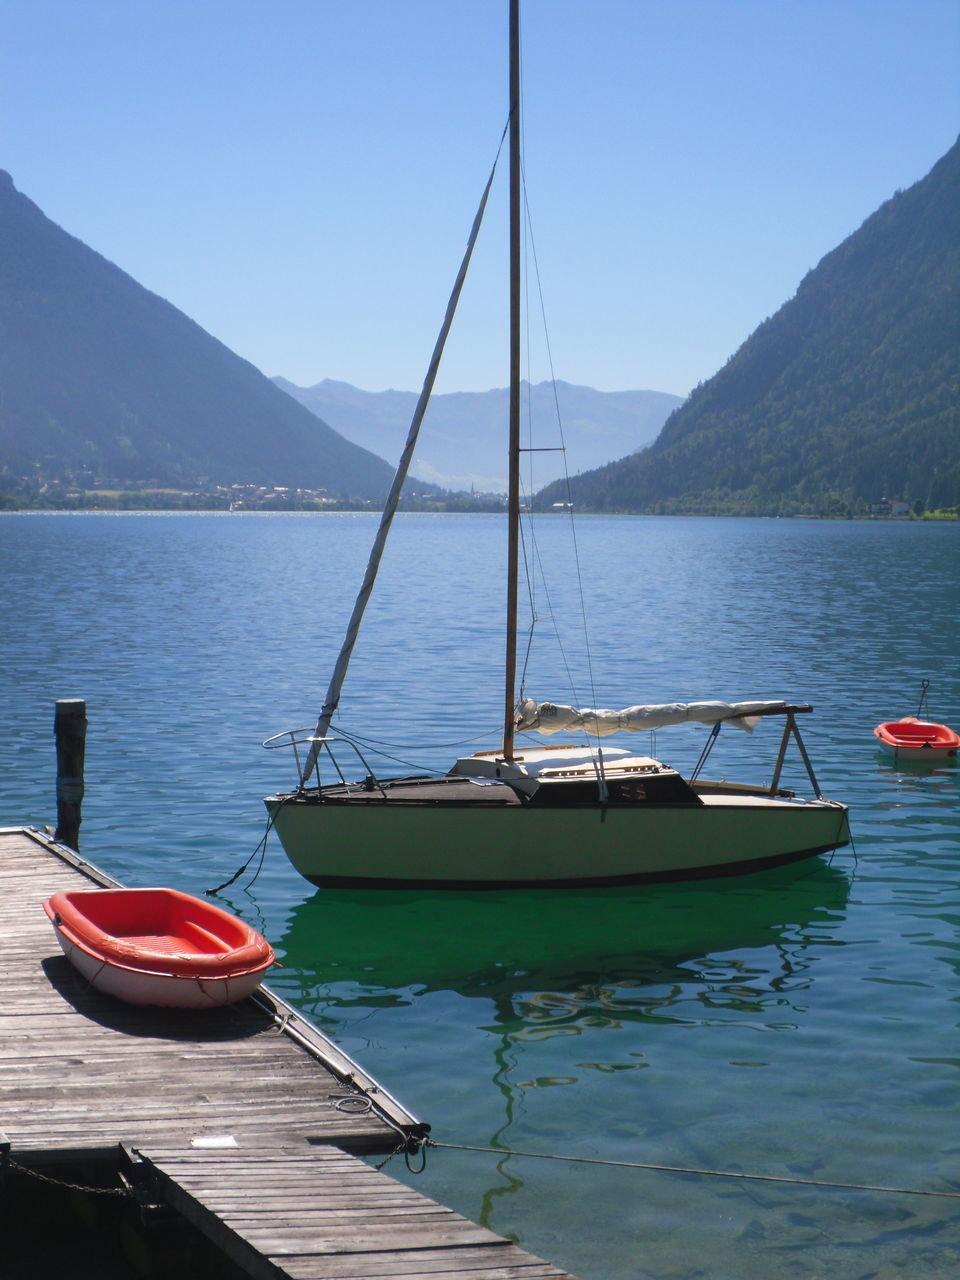 nautical vessel, water, mode of transportation, transportation, mountain, moored, beauty in nature, sky, nature, clear sky, scenics - nature, no people, day, lake, reflection, tranquility, outdoors, tranquil scene, sailboat, rowboat